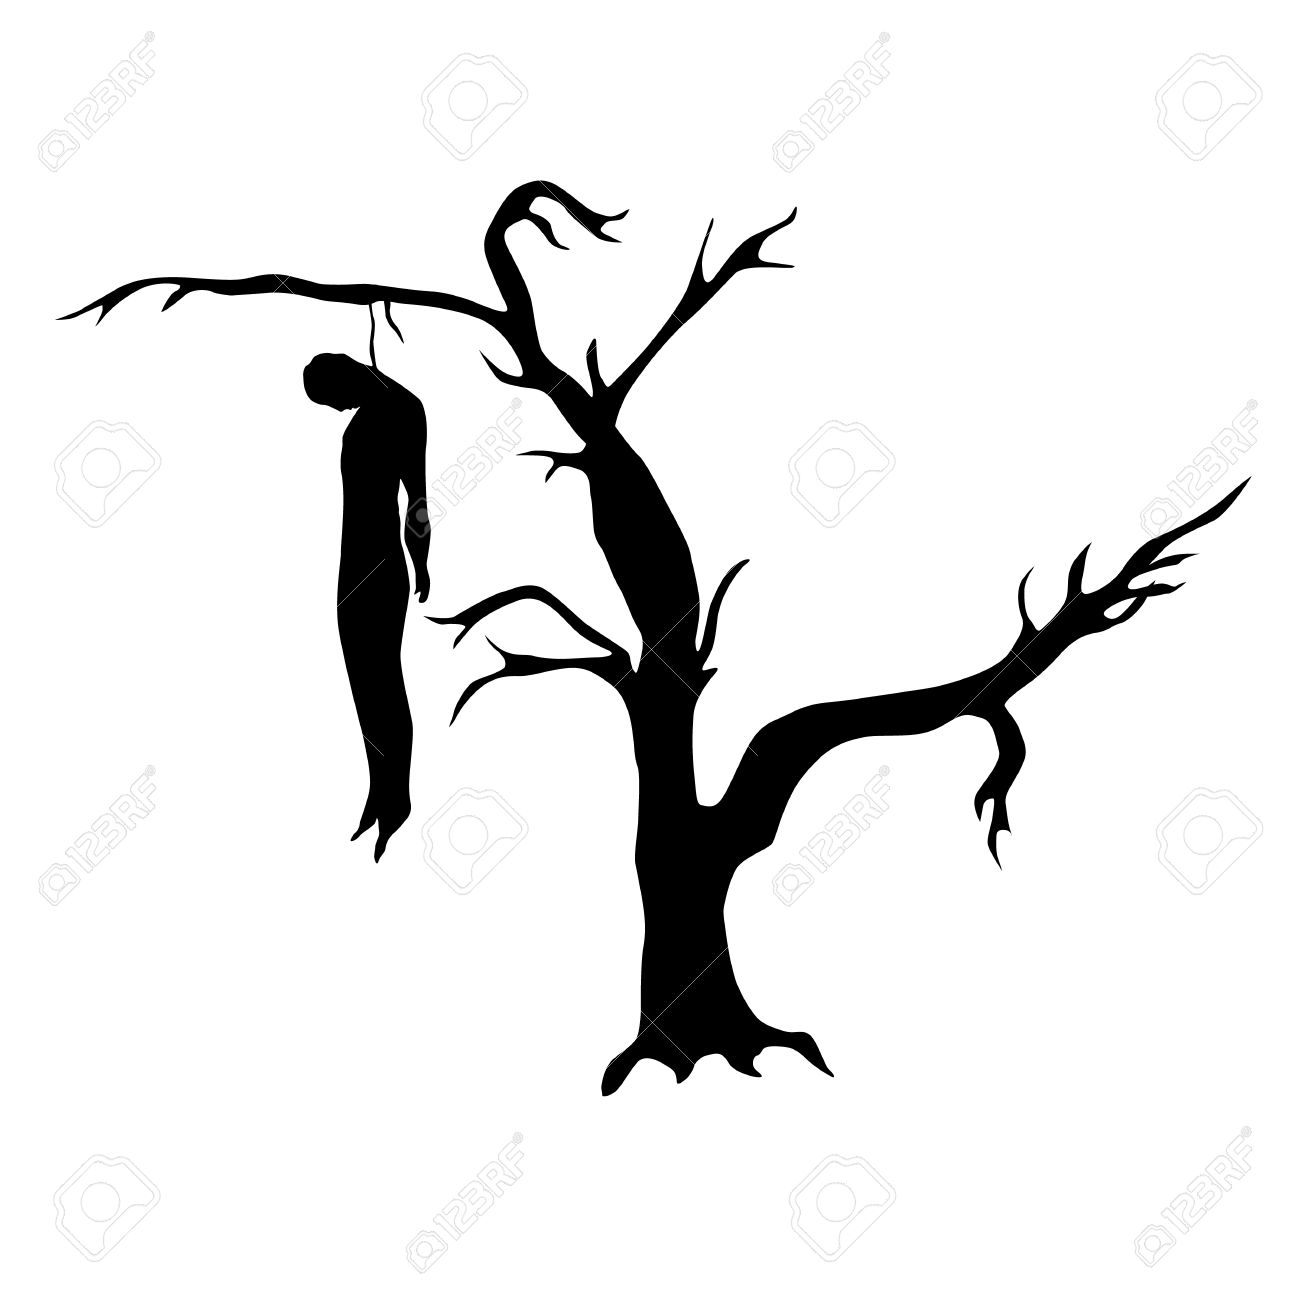 Man Hanged From A Dead Tree Silhouette Isolated On White Background Stock Vector